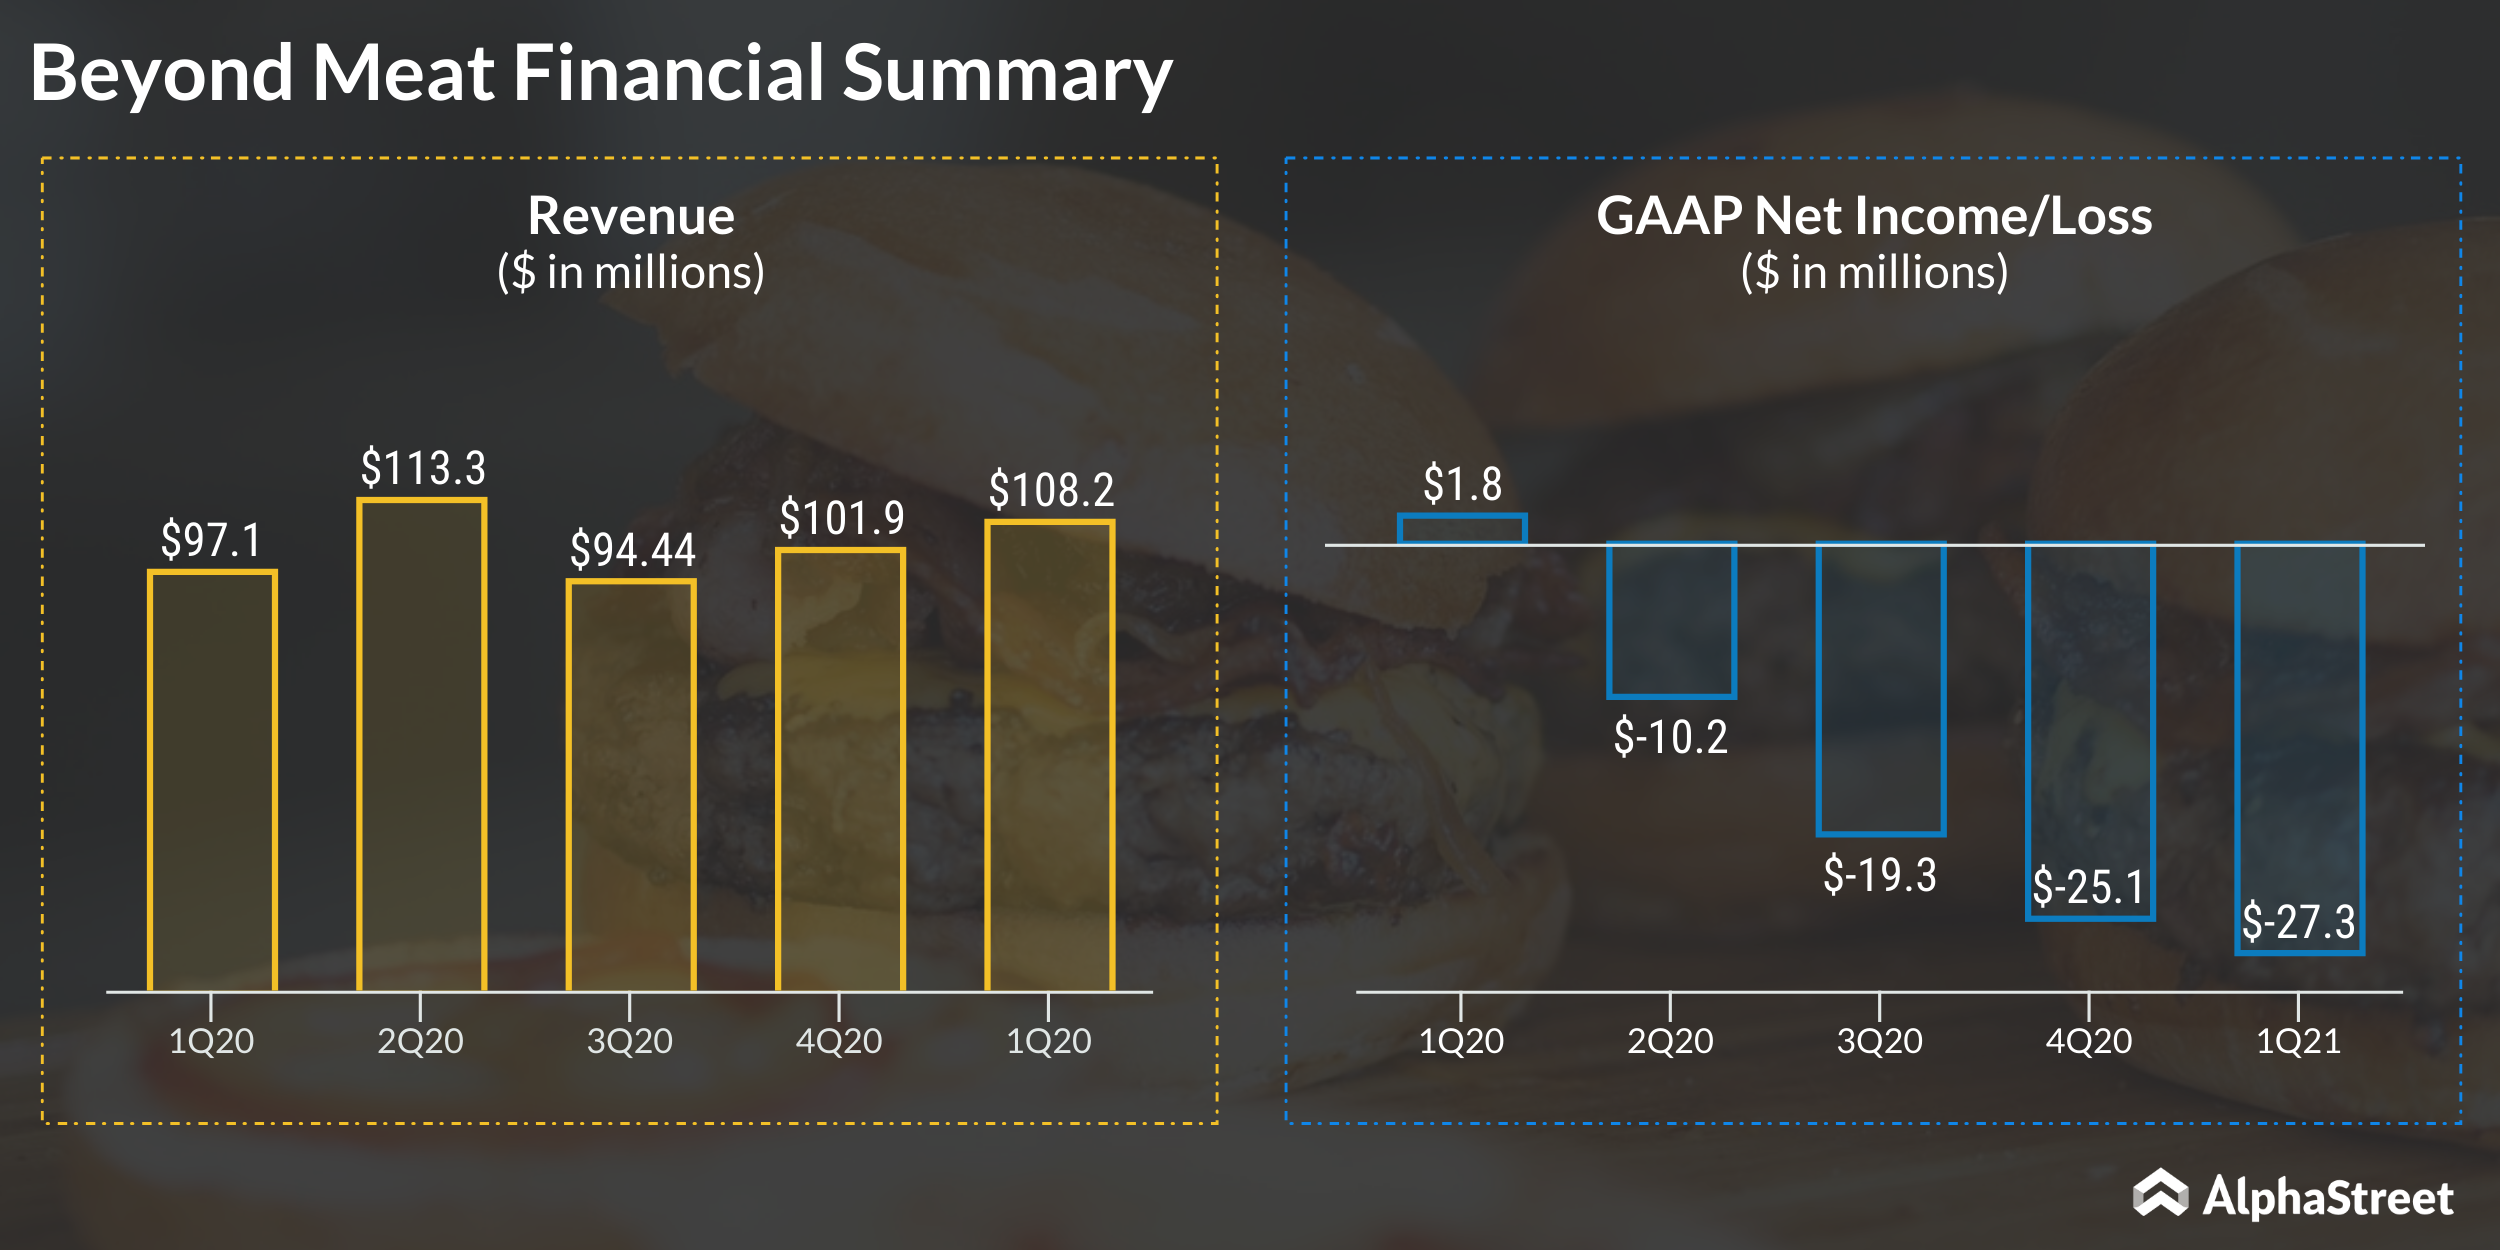 Beyond Meat Q1 2021 Financial Summary